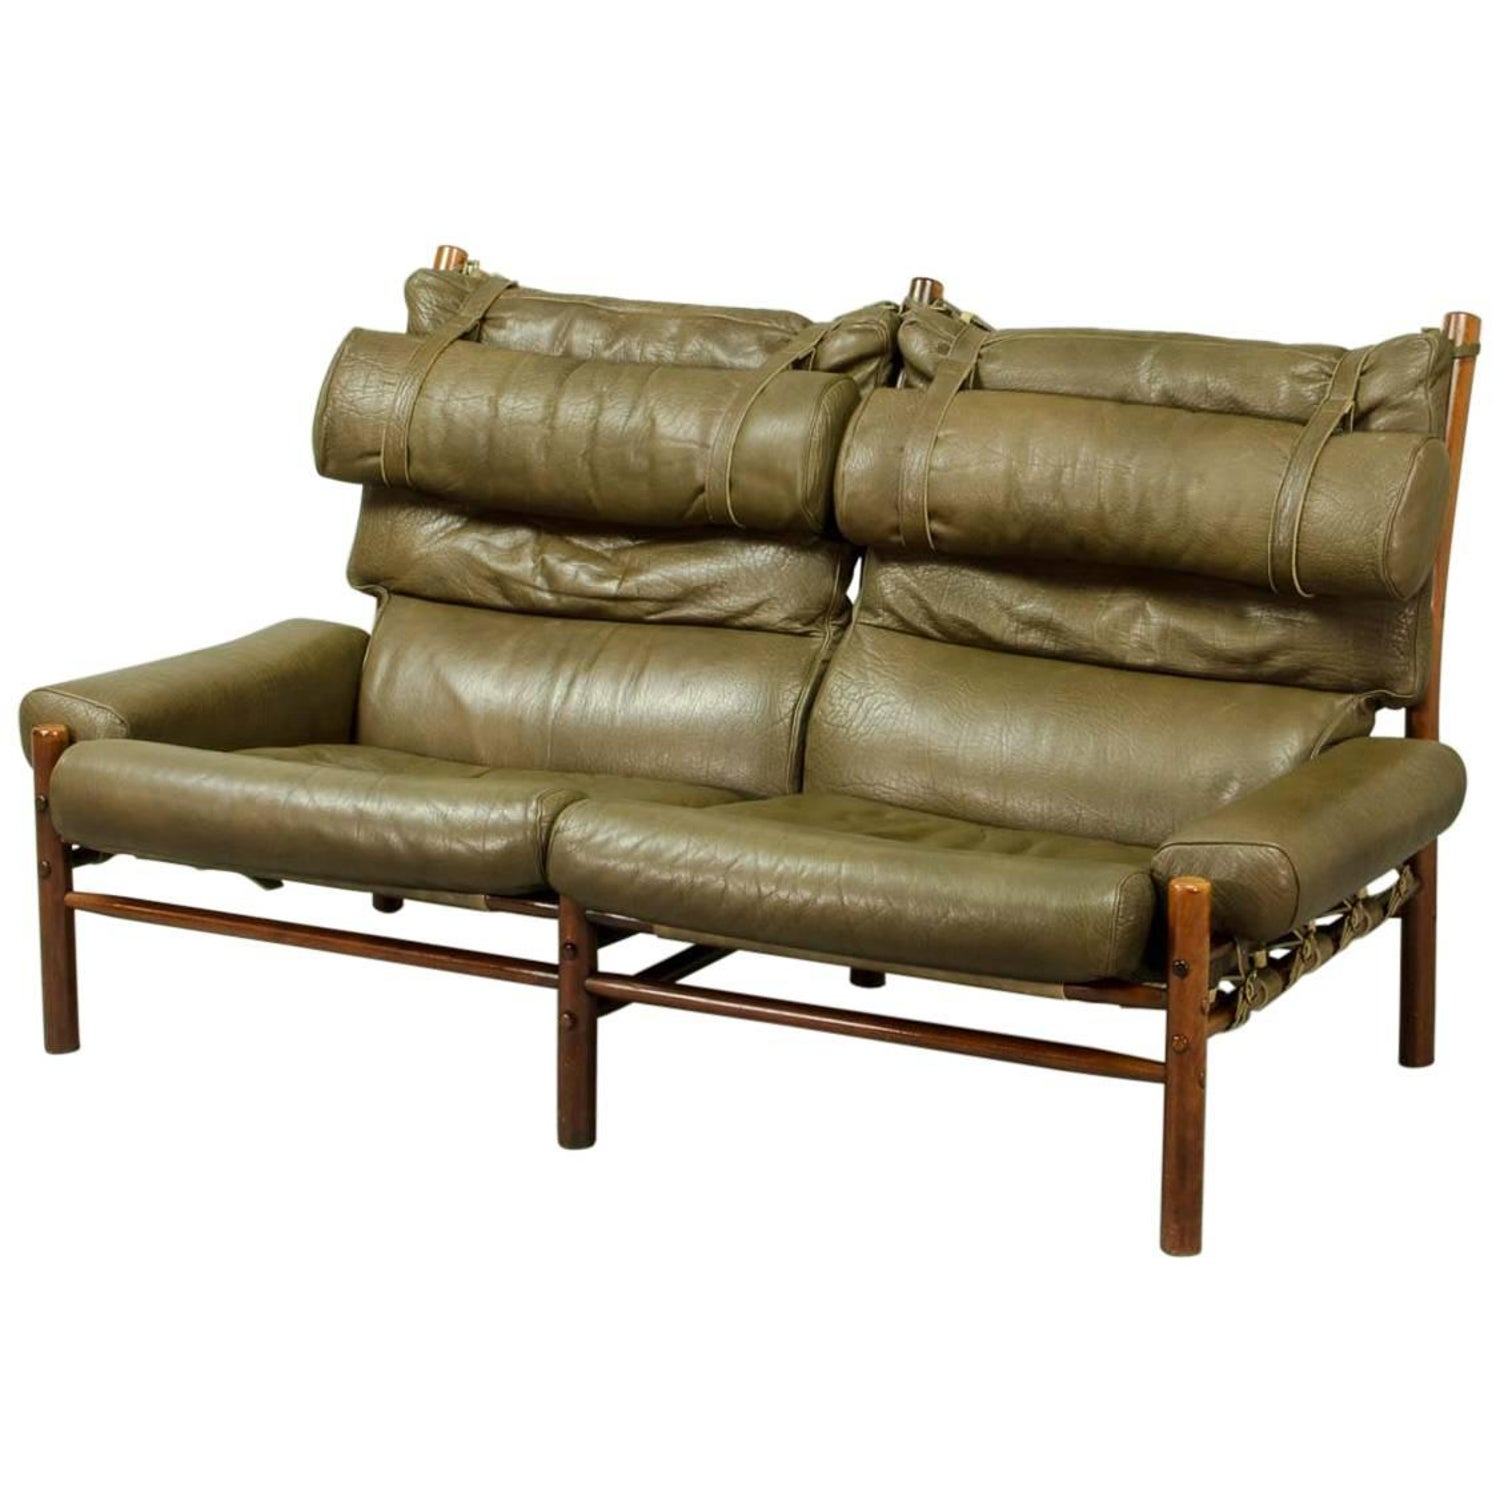 Swedish Mid Century Modern Black Leather Sofa by Arne Norell at